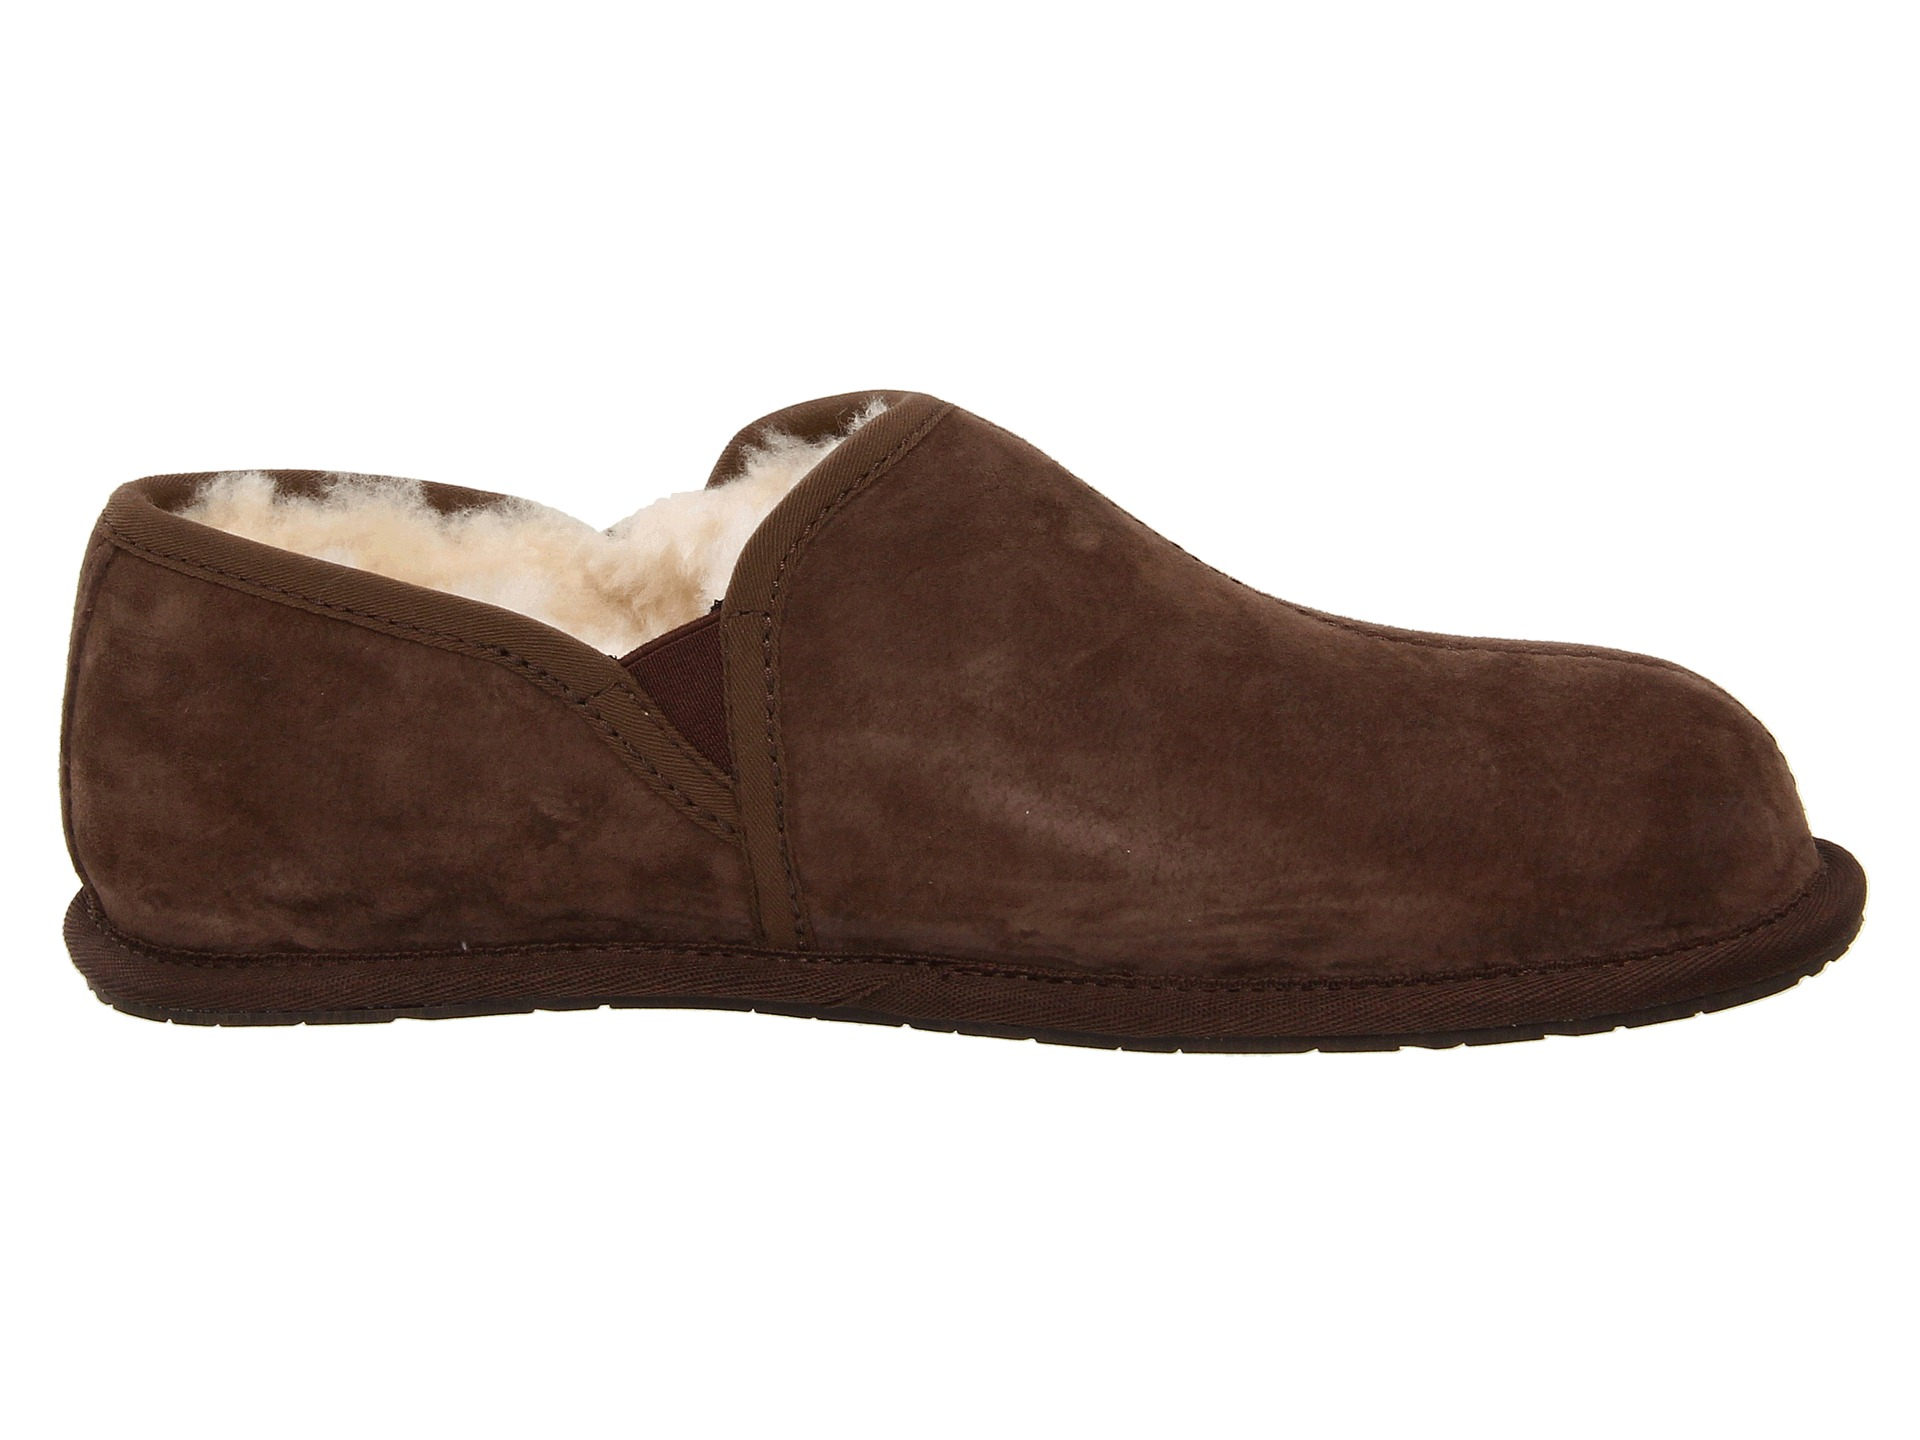 d3038cfed40 Ugg Scuff Romeo Slippers - cheap watches mgc-gas.com